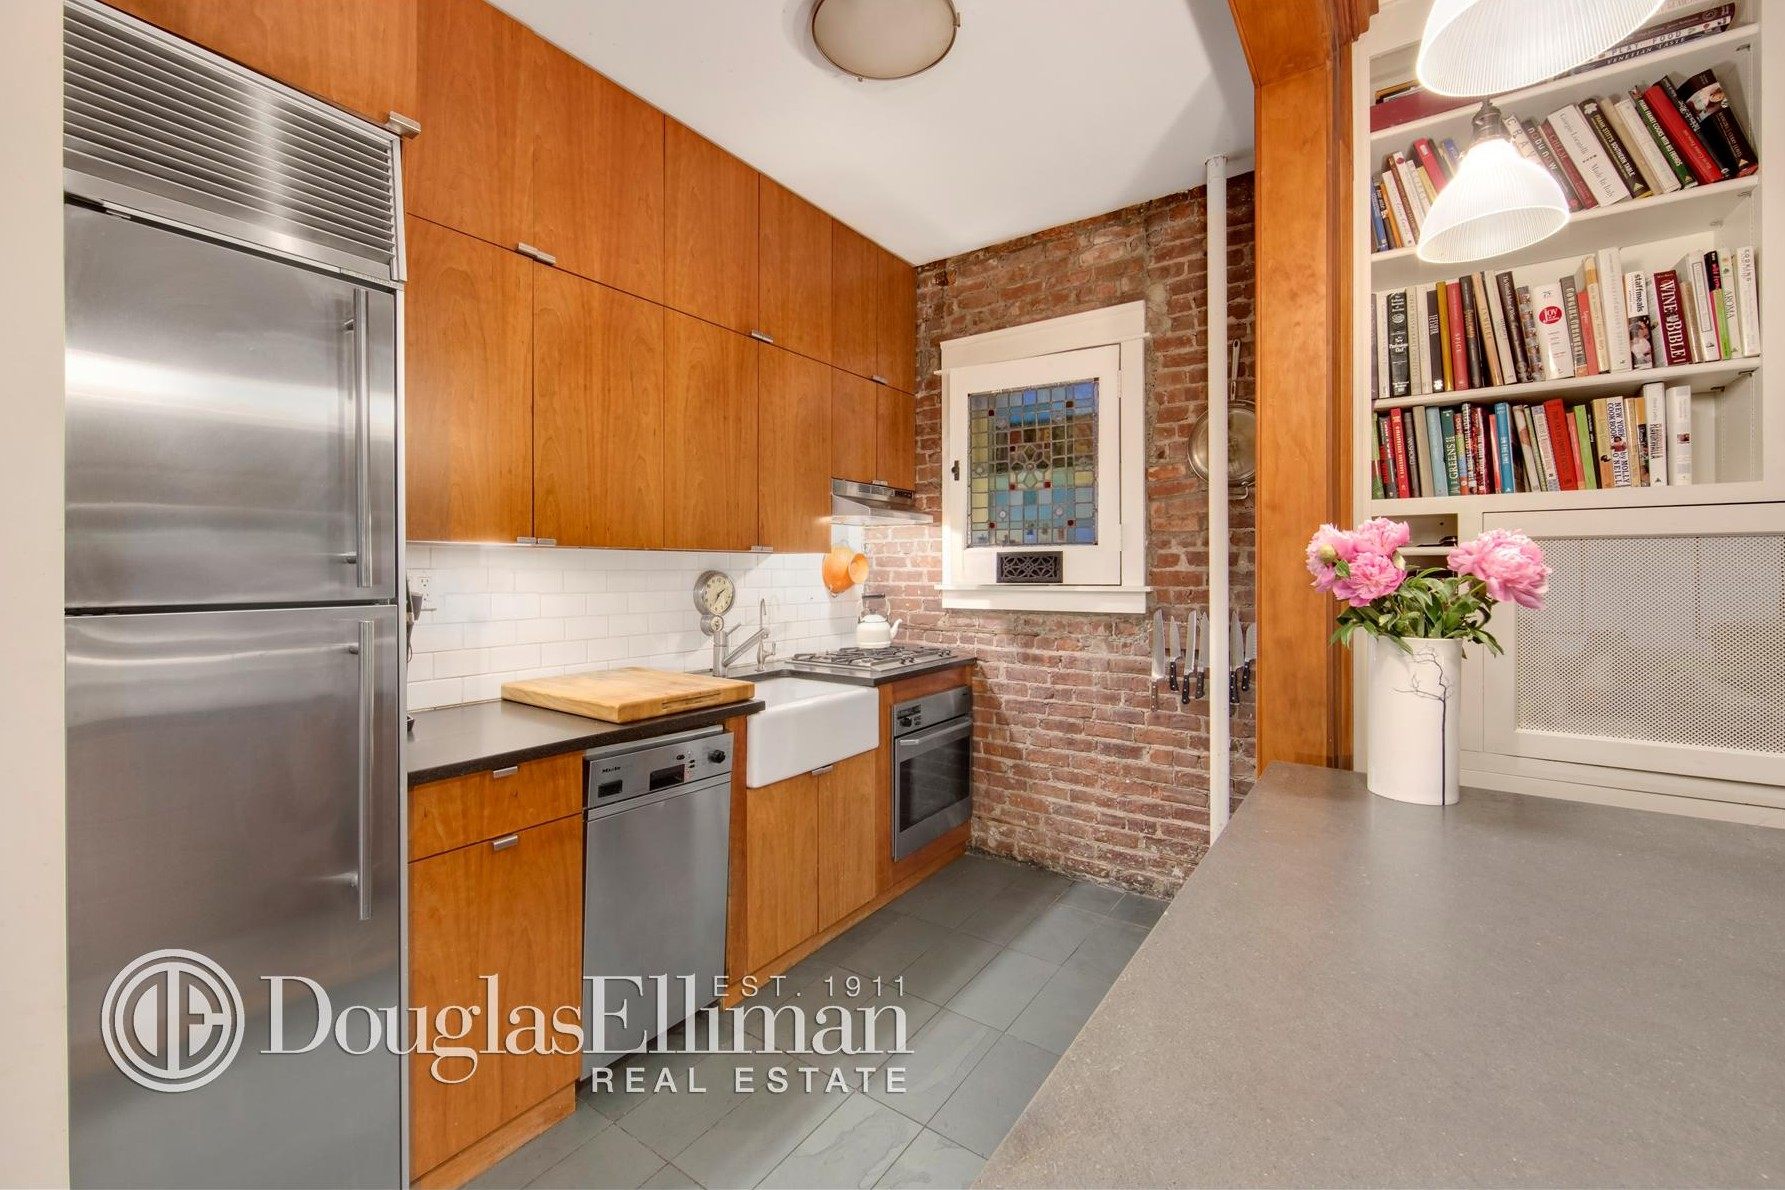 21 East 11th Street, Holly Hunter, Greenwich Village co-ops, Dan Weatherill Barber